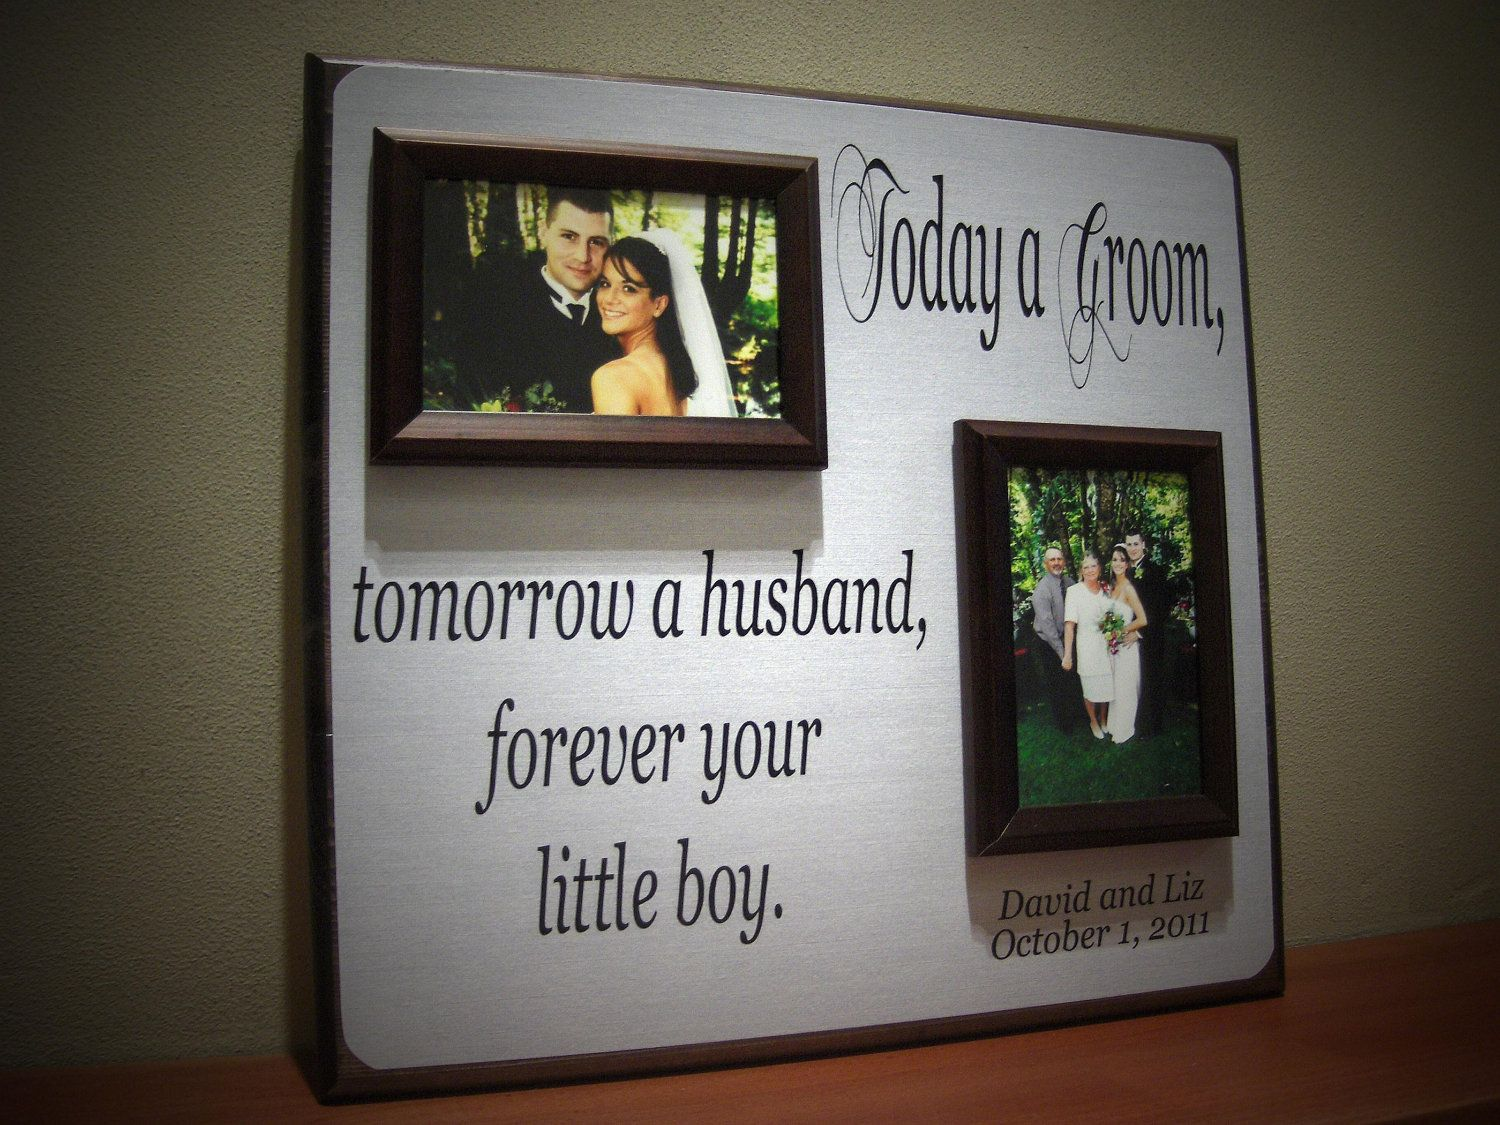 Today a groom wedding photo frame mother by yourpicturestory